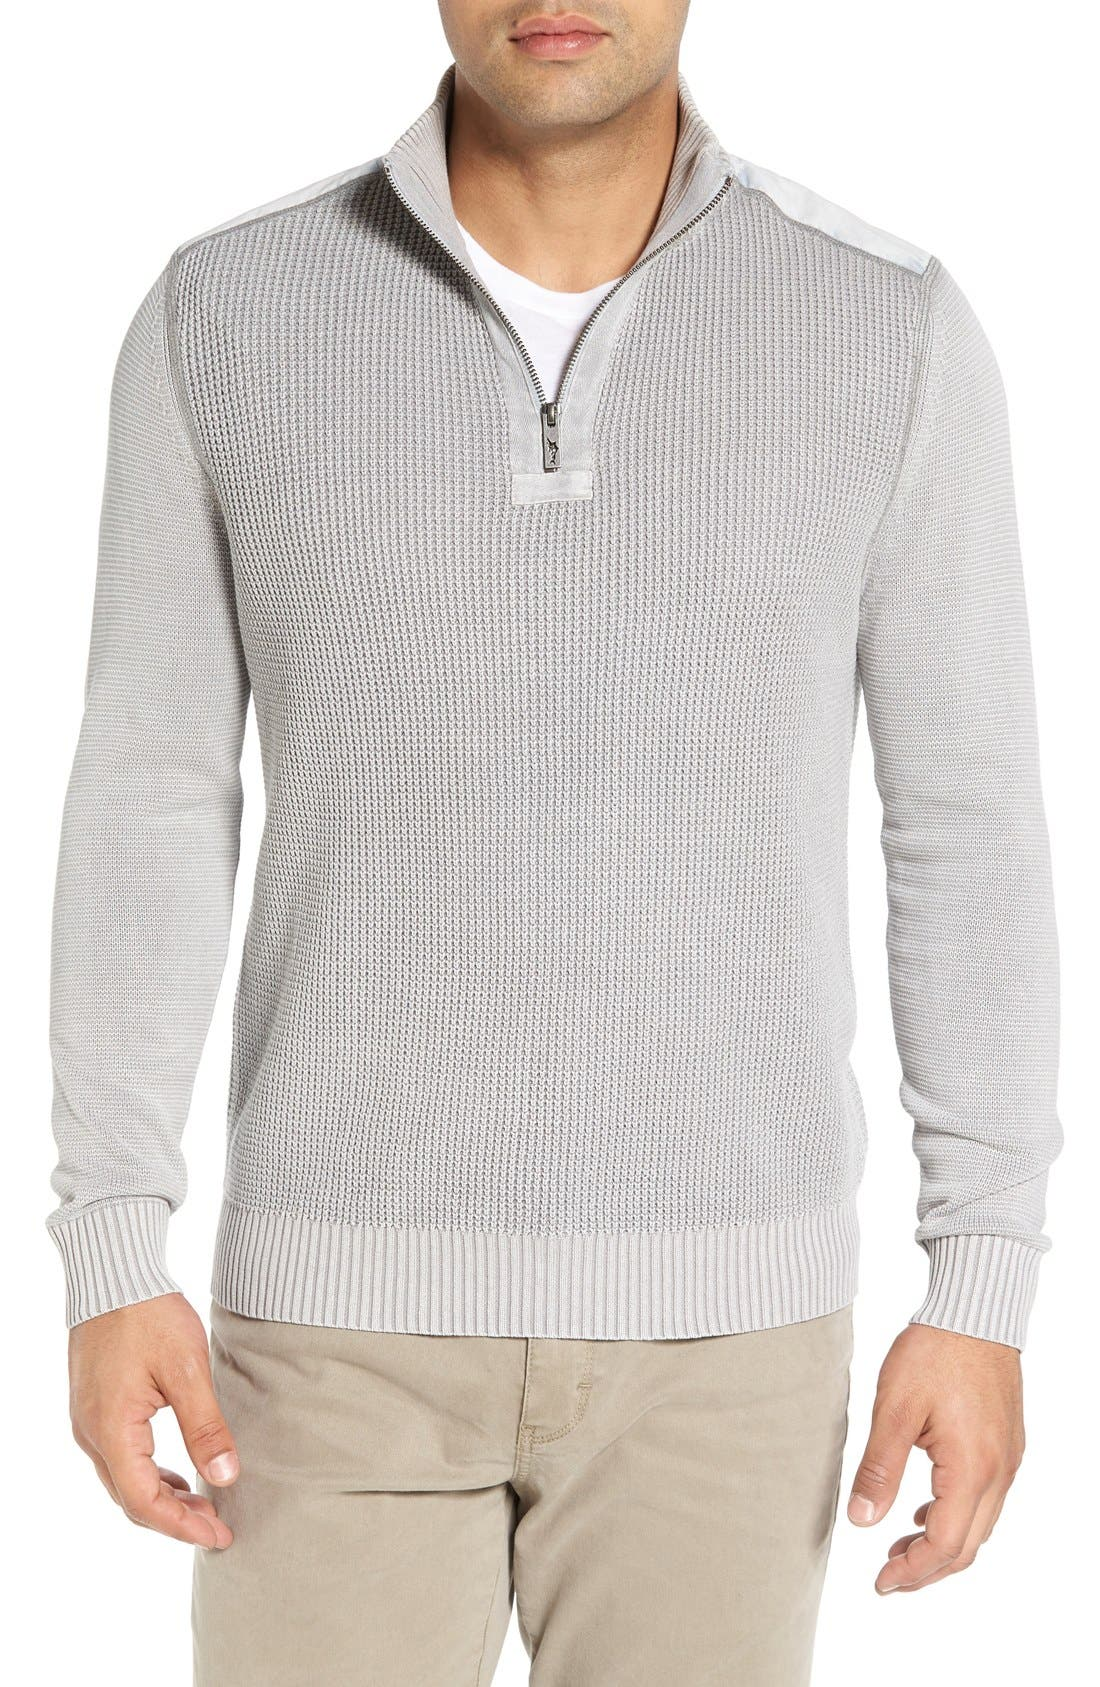 Main Image - Tommy Bahama 'Coastal Shores' Quarter Zip Sweater